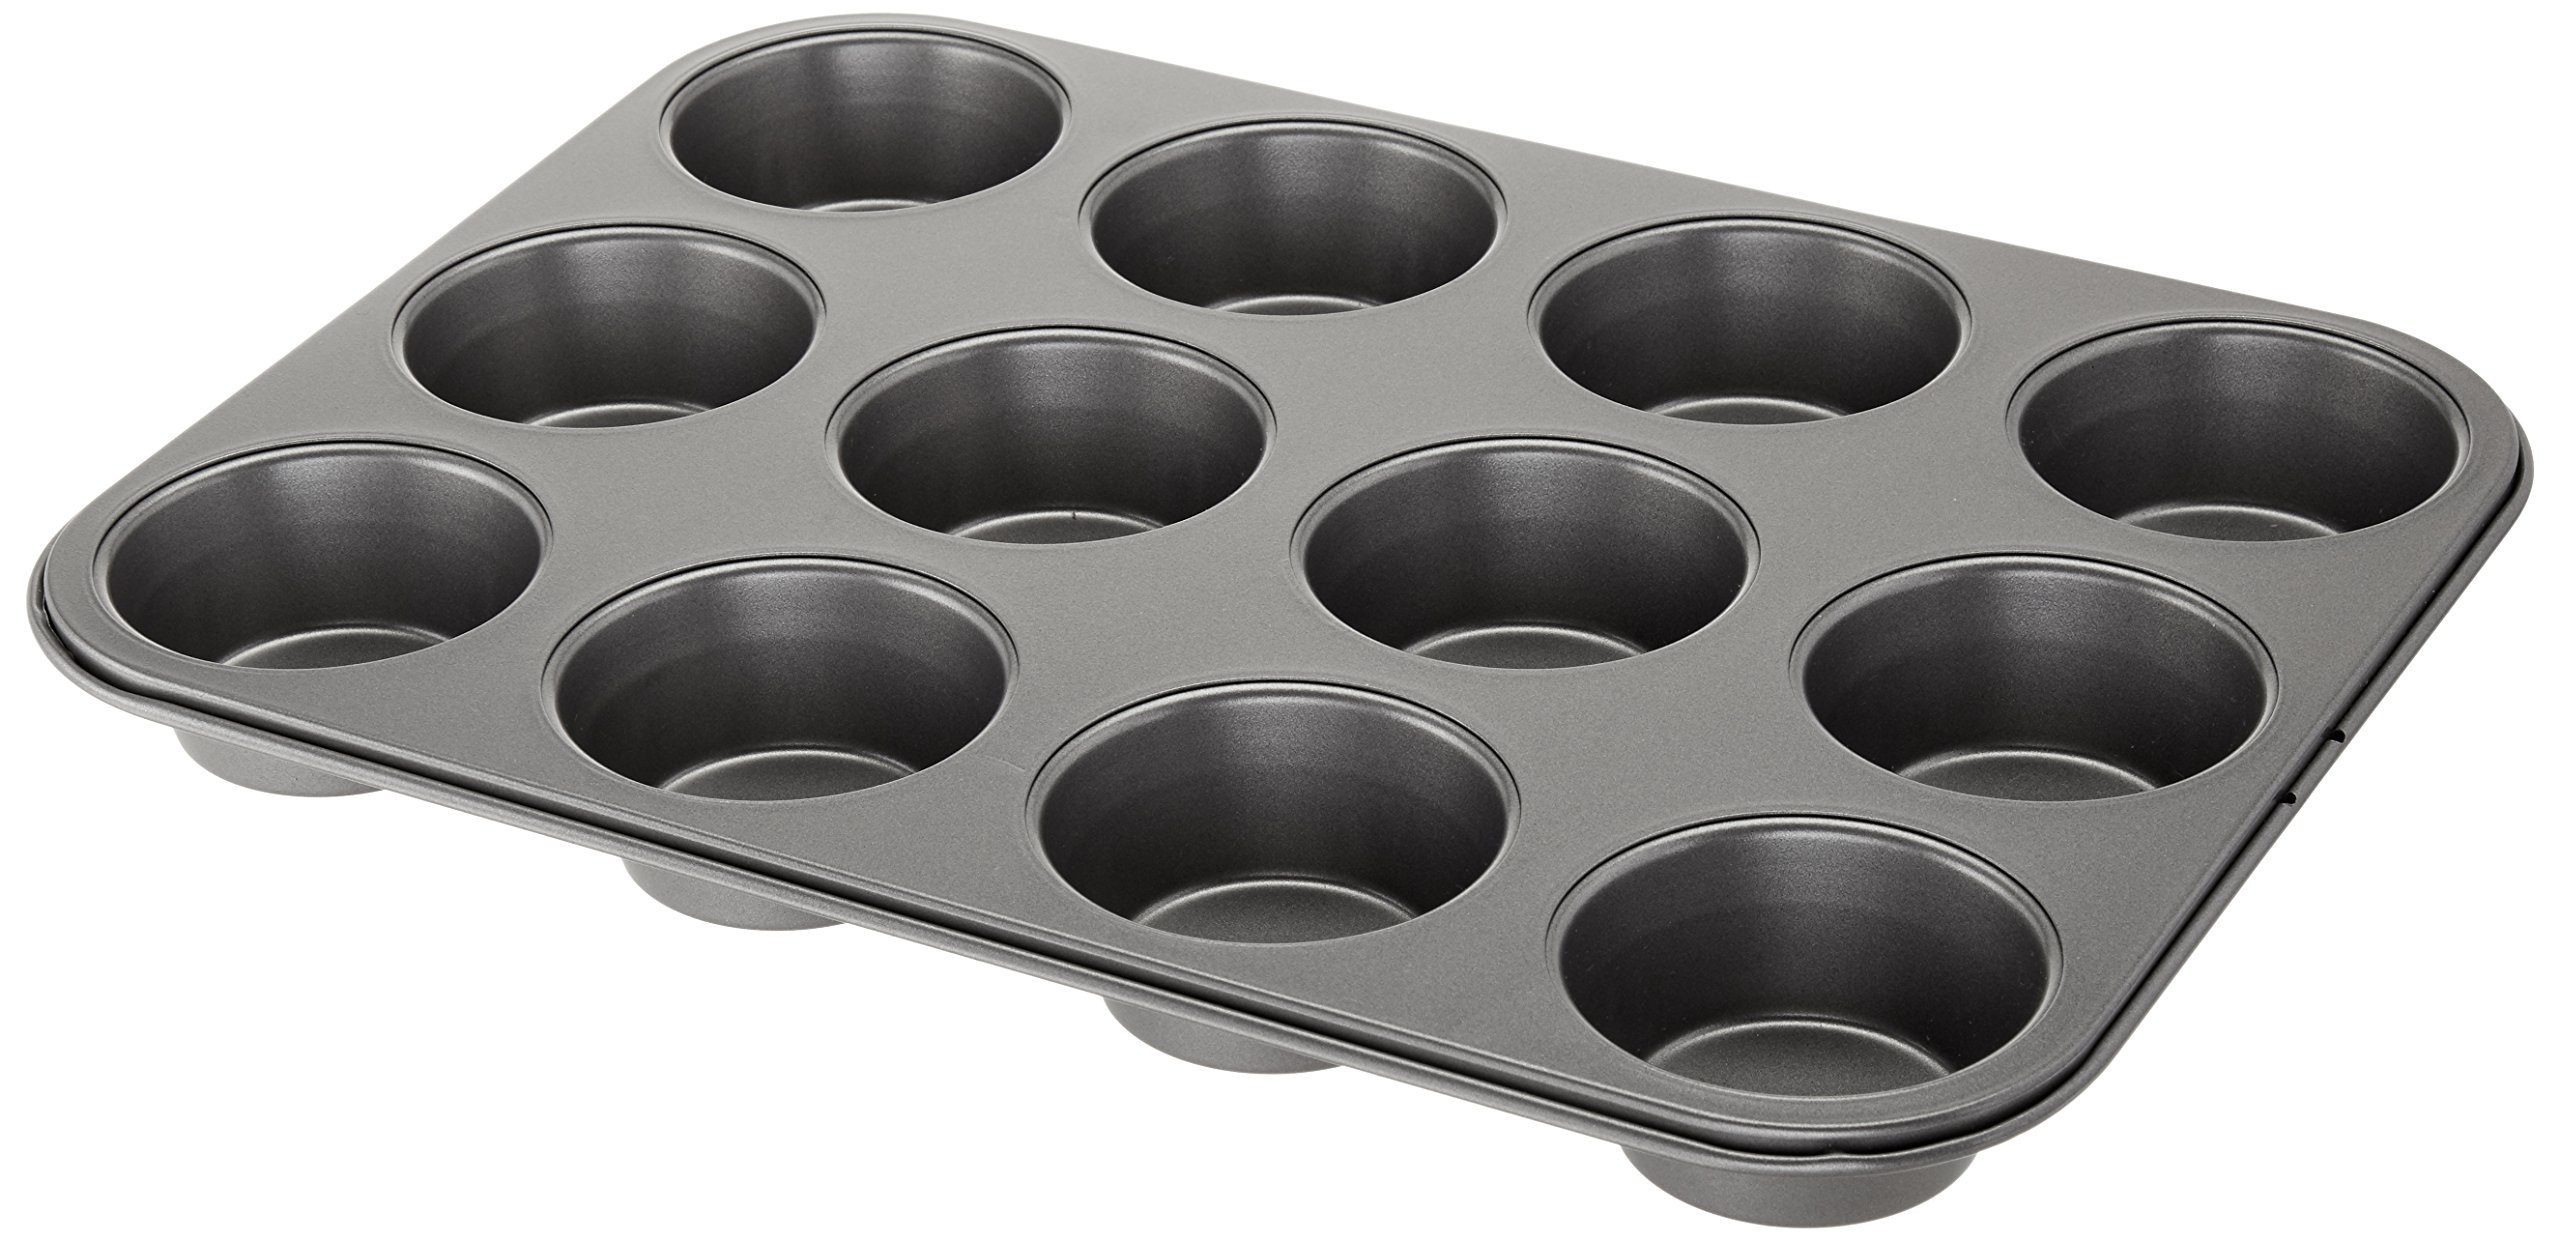 AmazonBasics 6-Piece Nonstick Bakeware Set by AmazonBasics (Image #4)